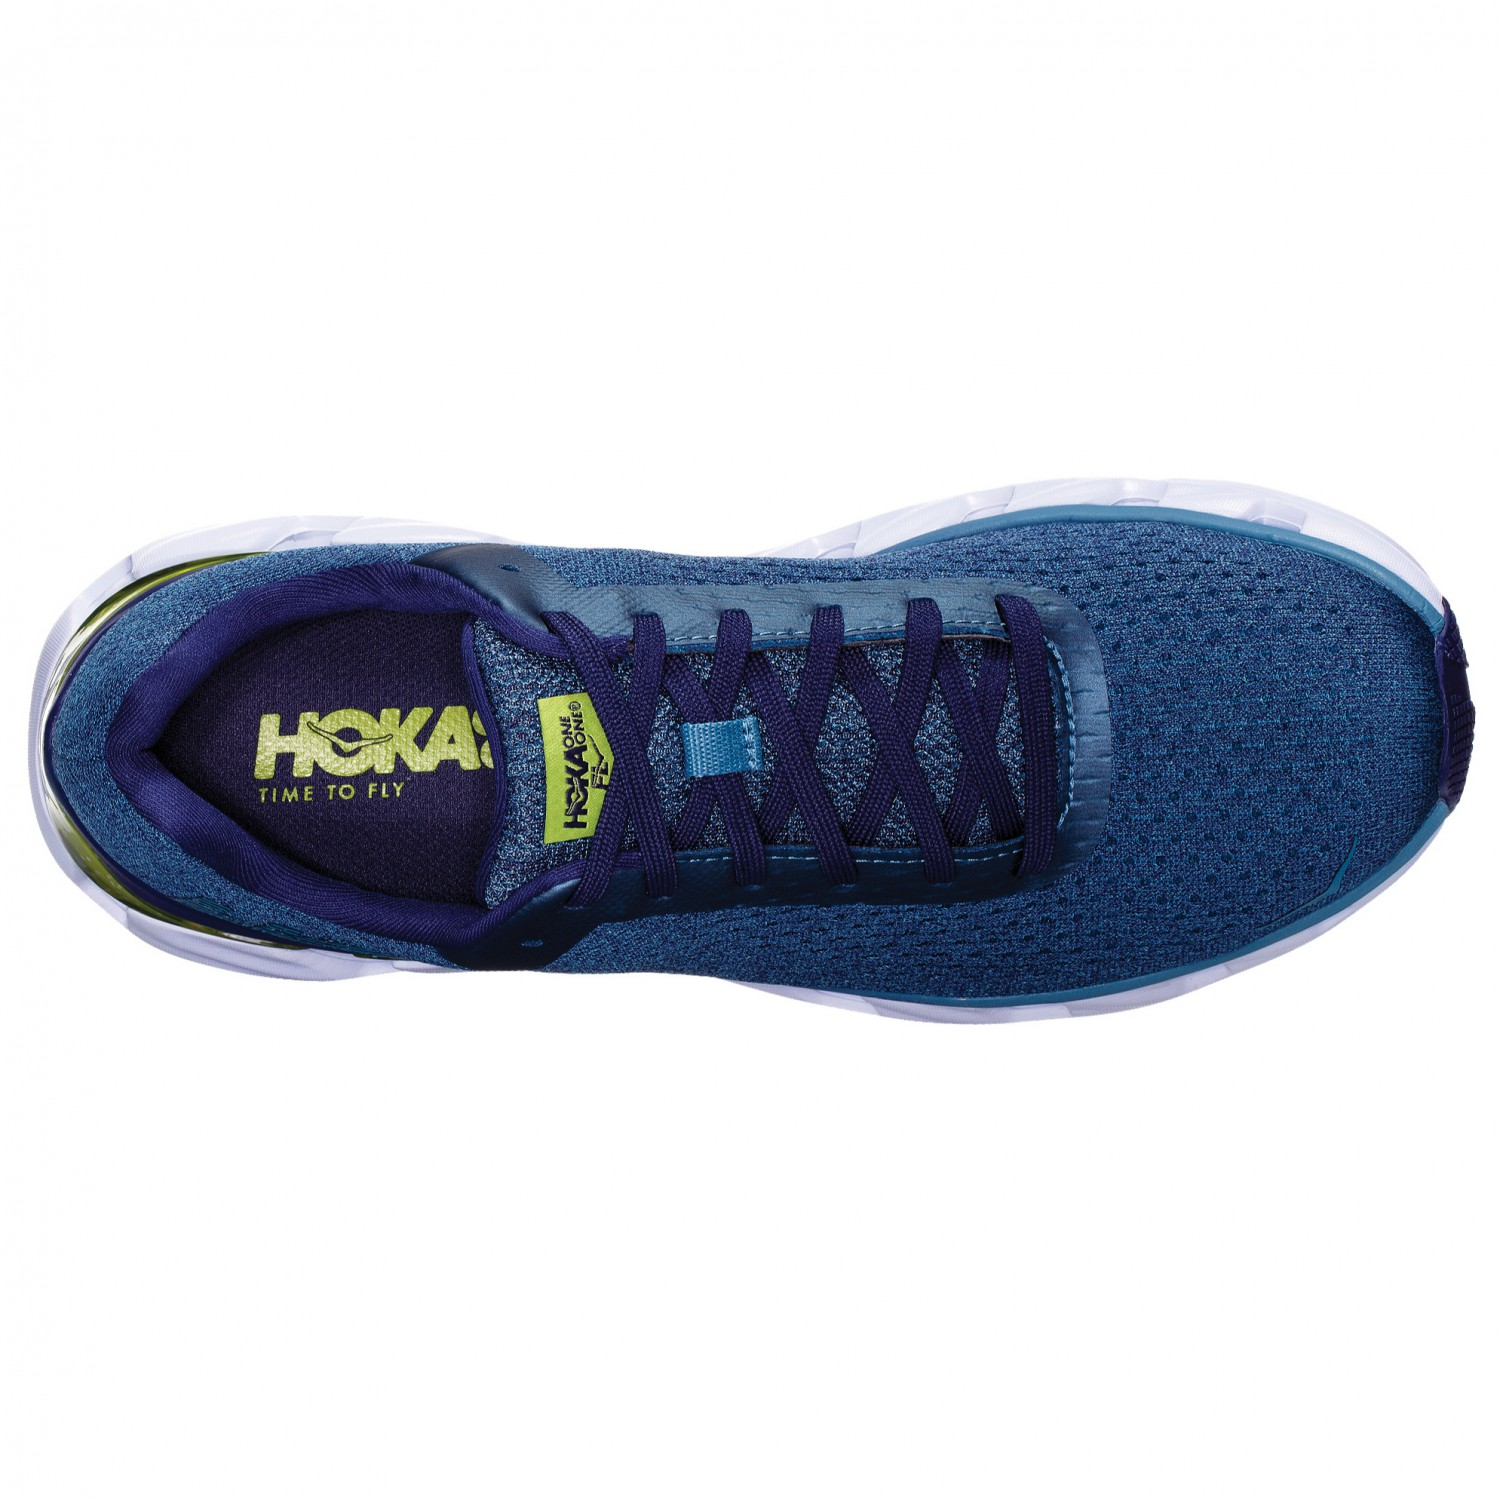 hoka one one elevon running shoes mens free uk